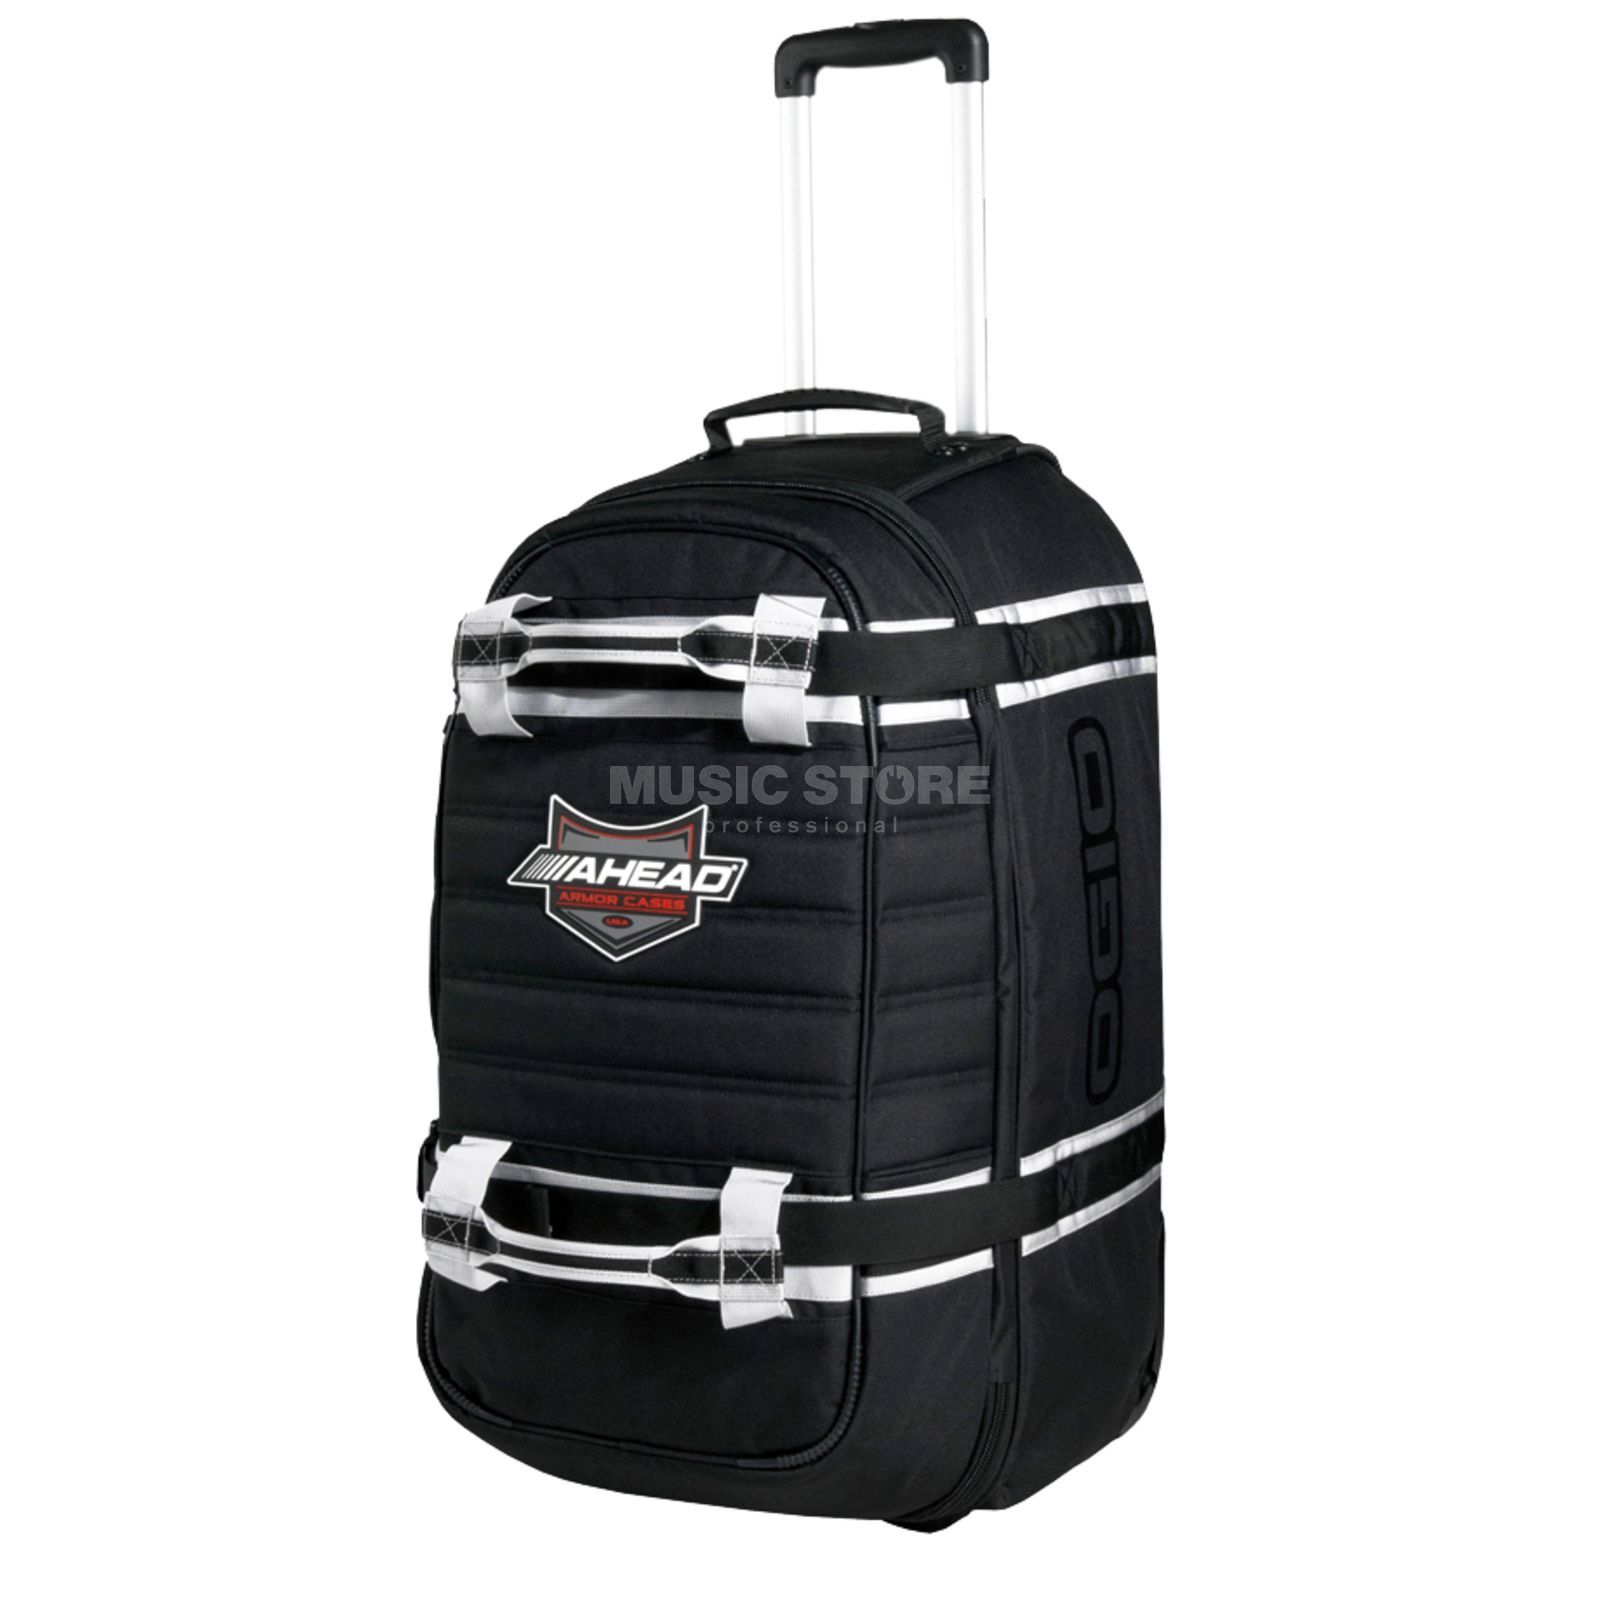 "Ahead Armor Cases Hardware Bag 5028OW, w/wheel, 28""x14""x14"", no SLED Immagine prodotto"